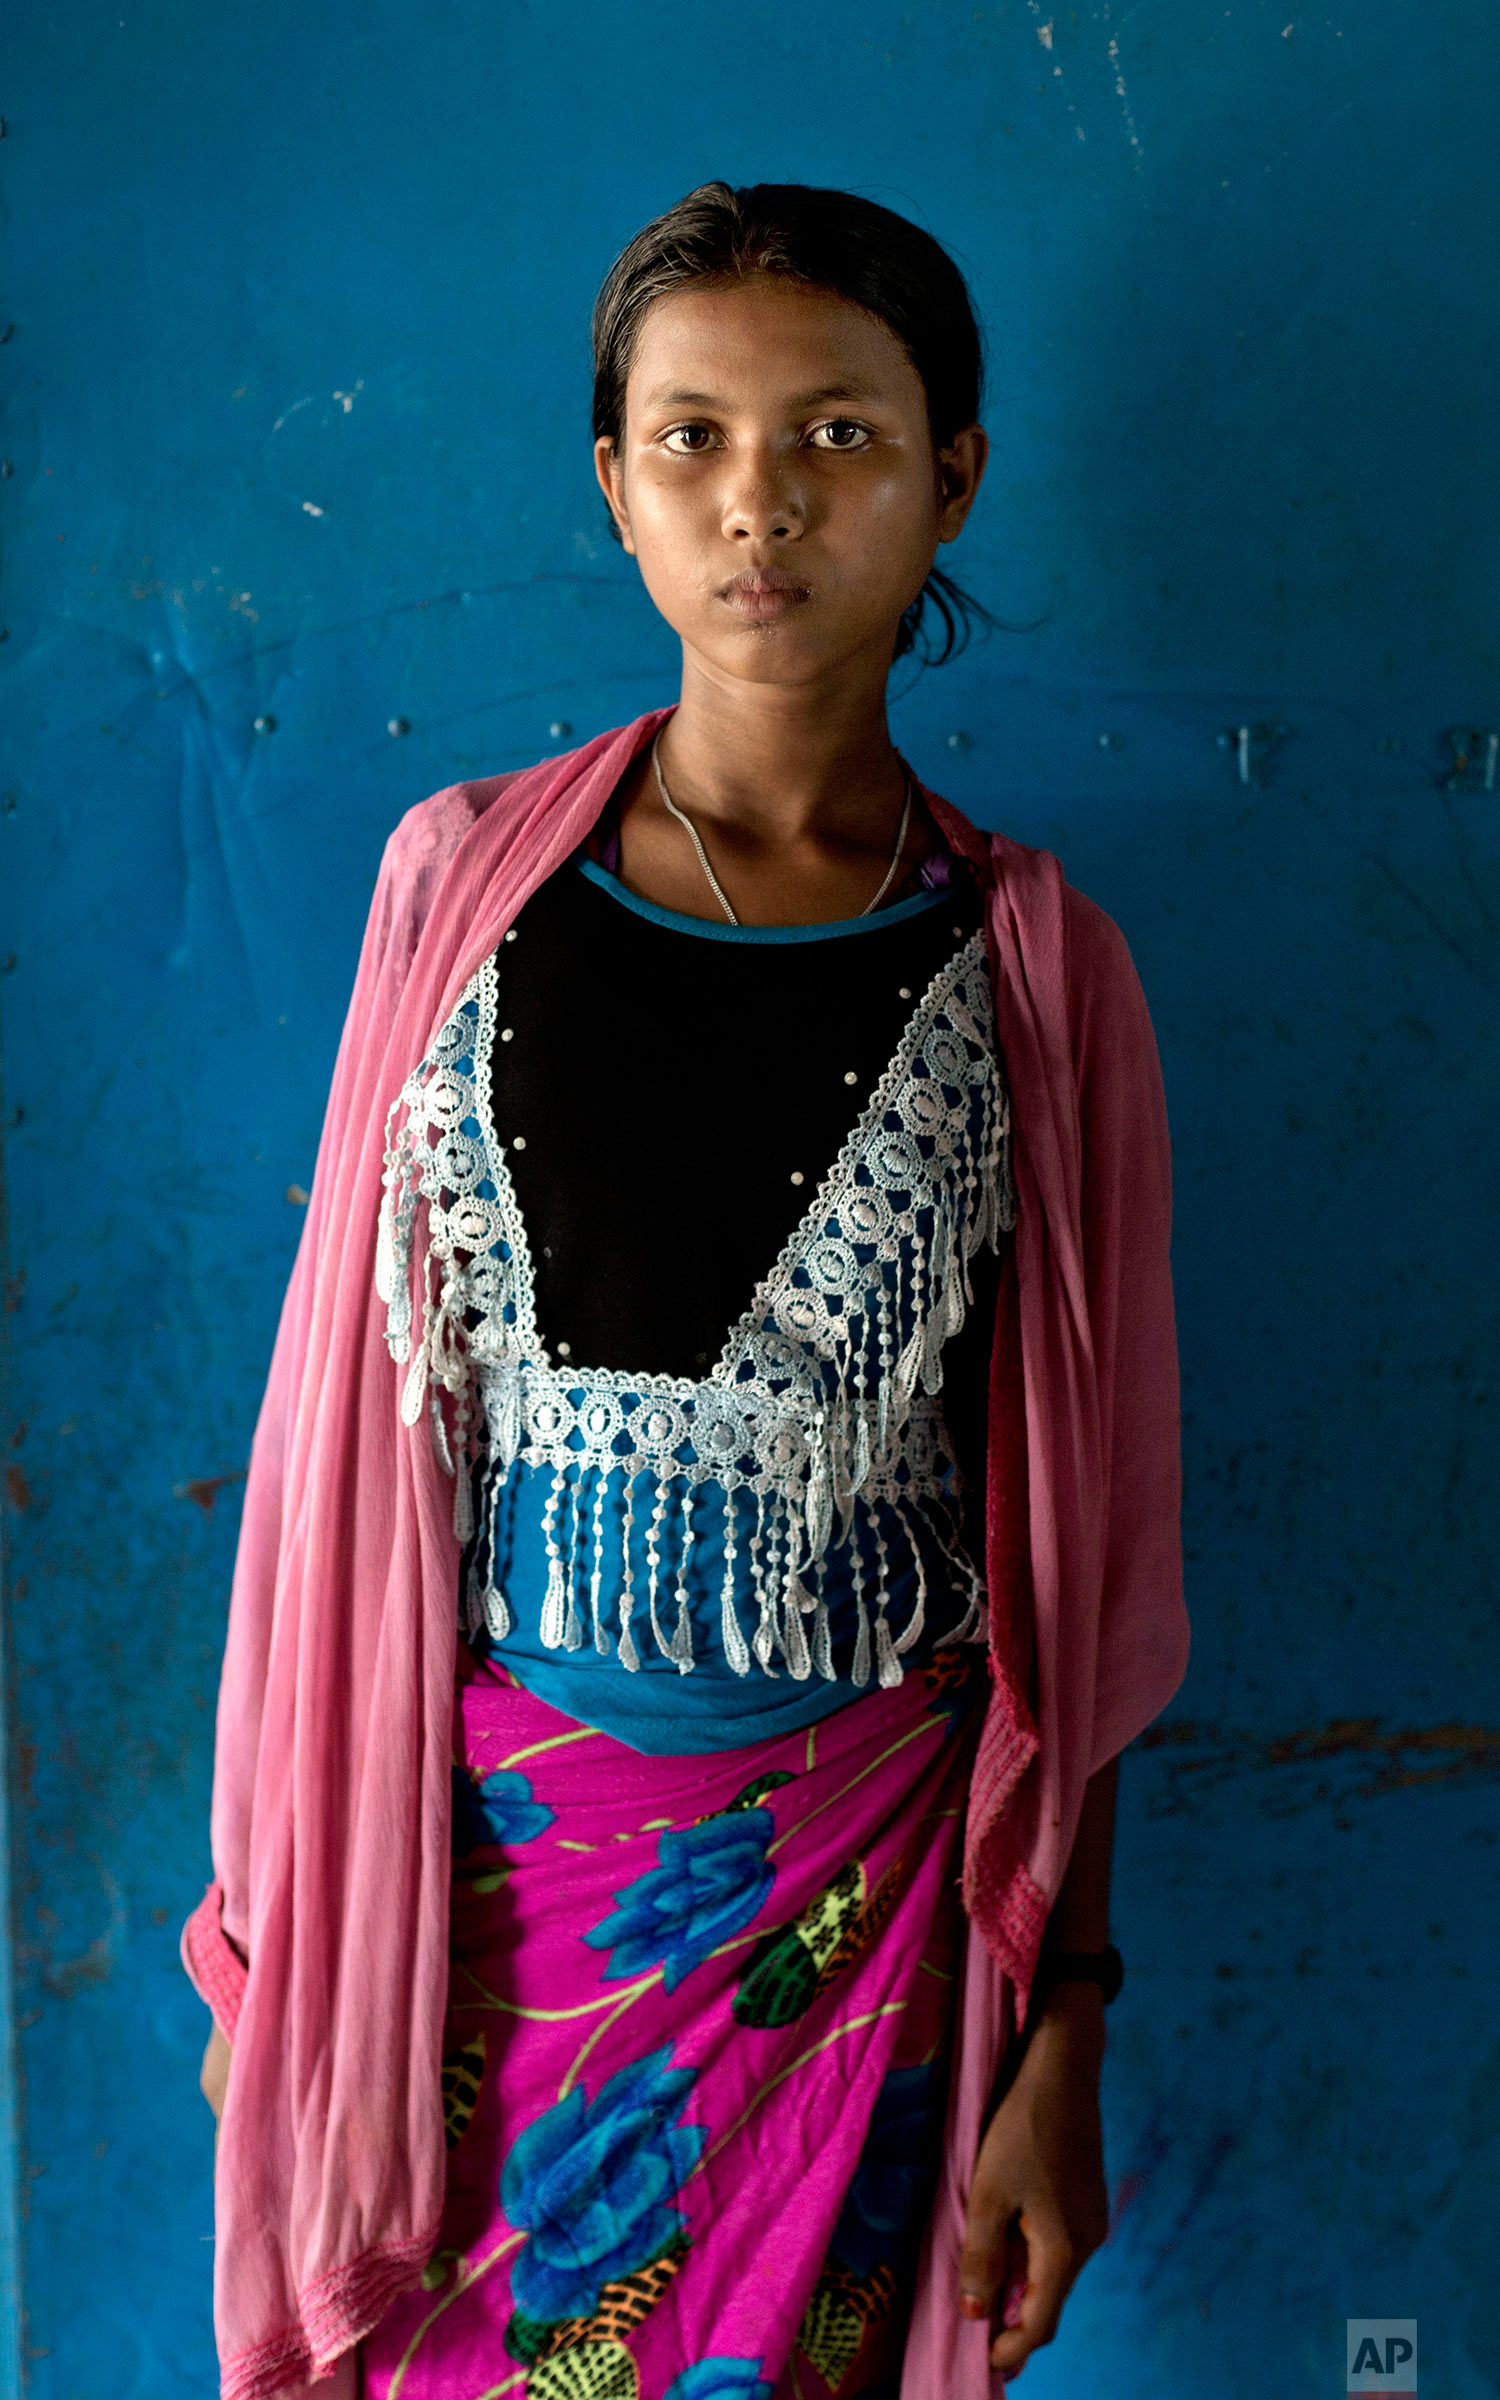 In this Oct. 1, 2017, photo, thirteen-year old survivor of a boat capsize Tosilima, from Myanmar's Moidaung Village, stands for a photograph at a transit shelter at Kutupalong camp for newly arrived Rohingya refugees in Bangladesh. Tosilima's mother and two sisters  drowned when a boat they were traveling in, to make their escape from Myanmar, capsized on Sept. 28. She survived along with her father Mohamed Kasim and three siblings. (AP Photo/Gemunu Amarasinghe)